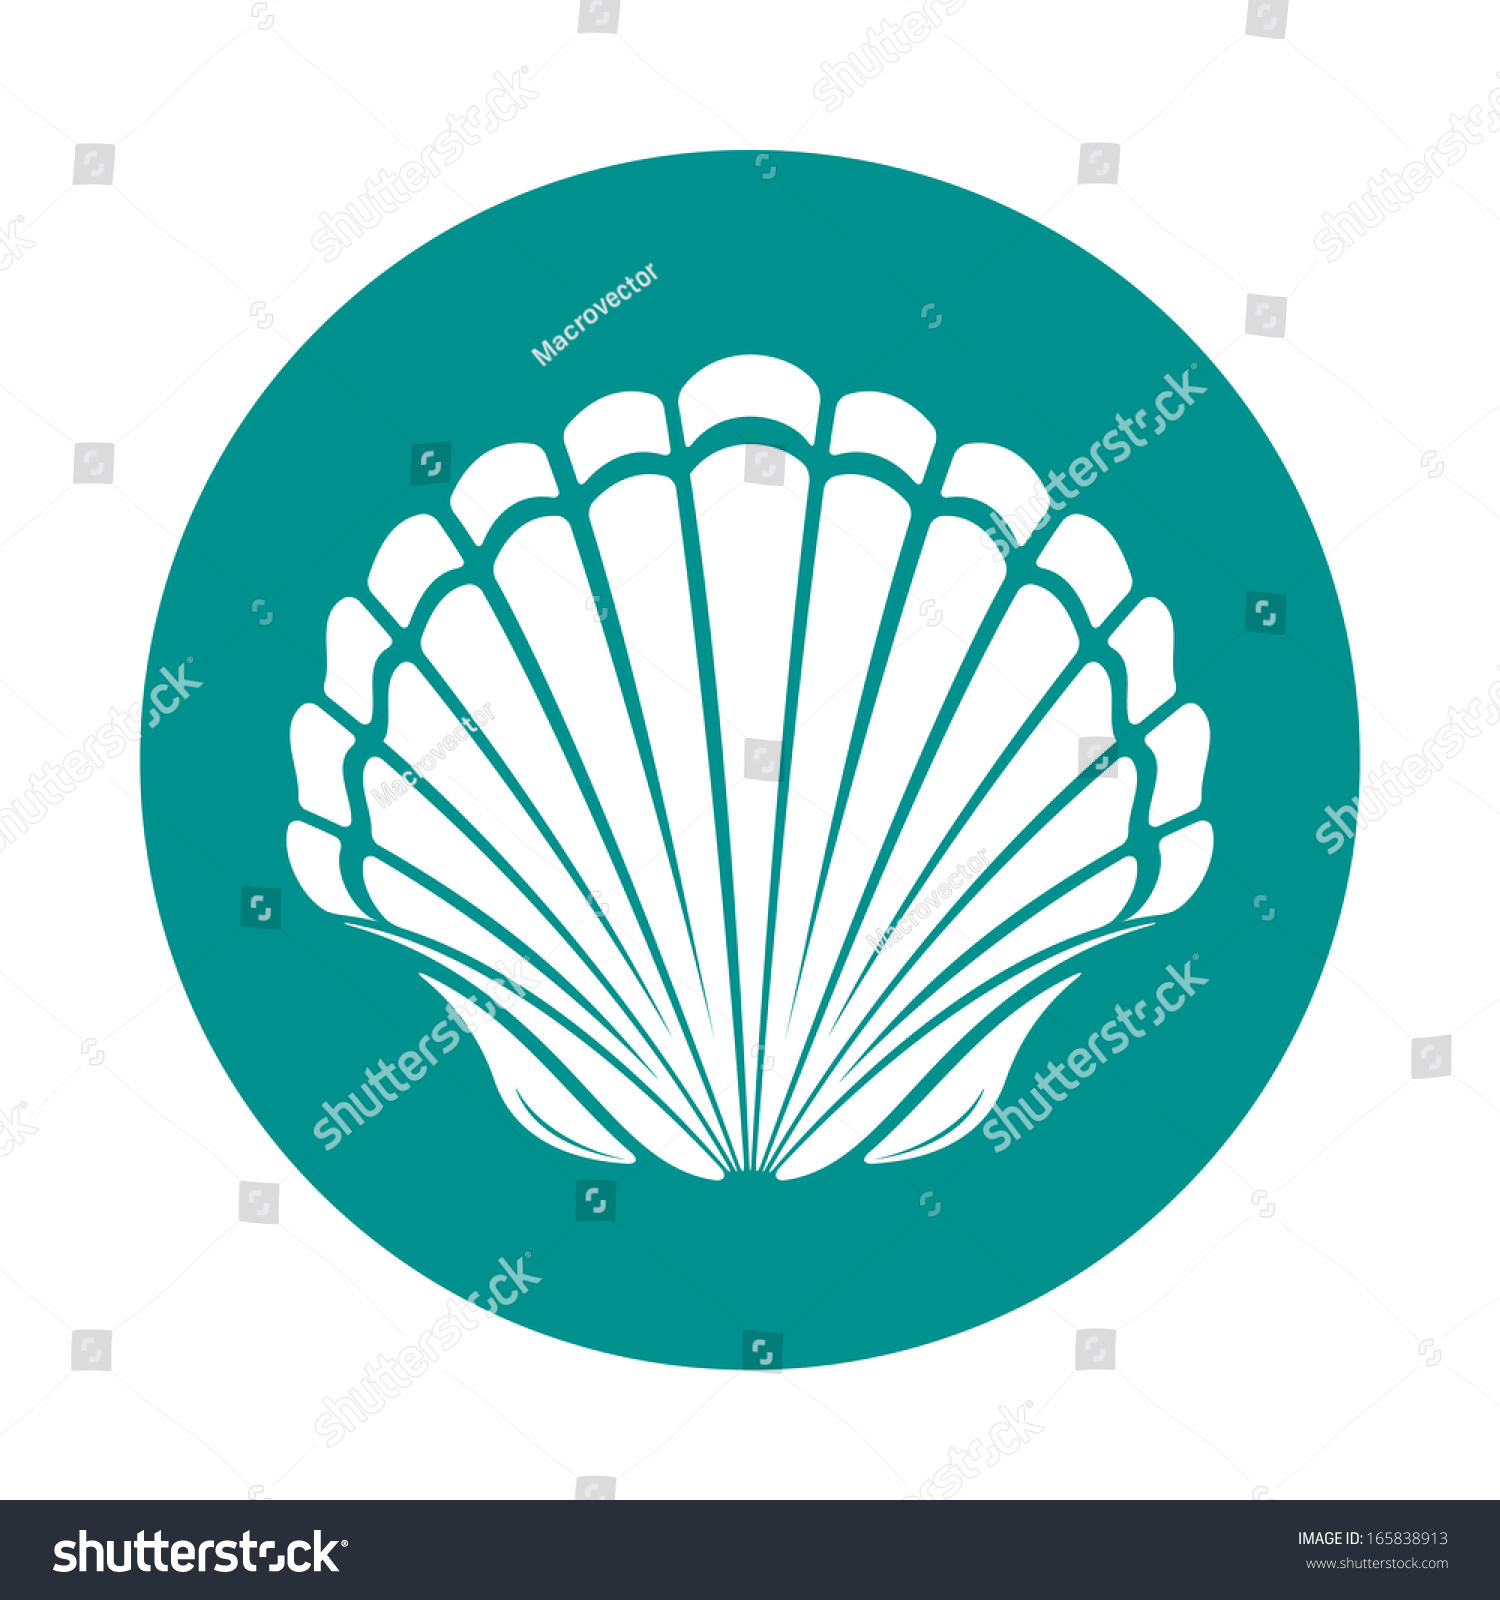 Scallop Sea Shell Symbol Illustration Stock Illustration 165838913